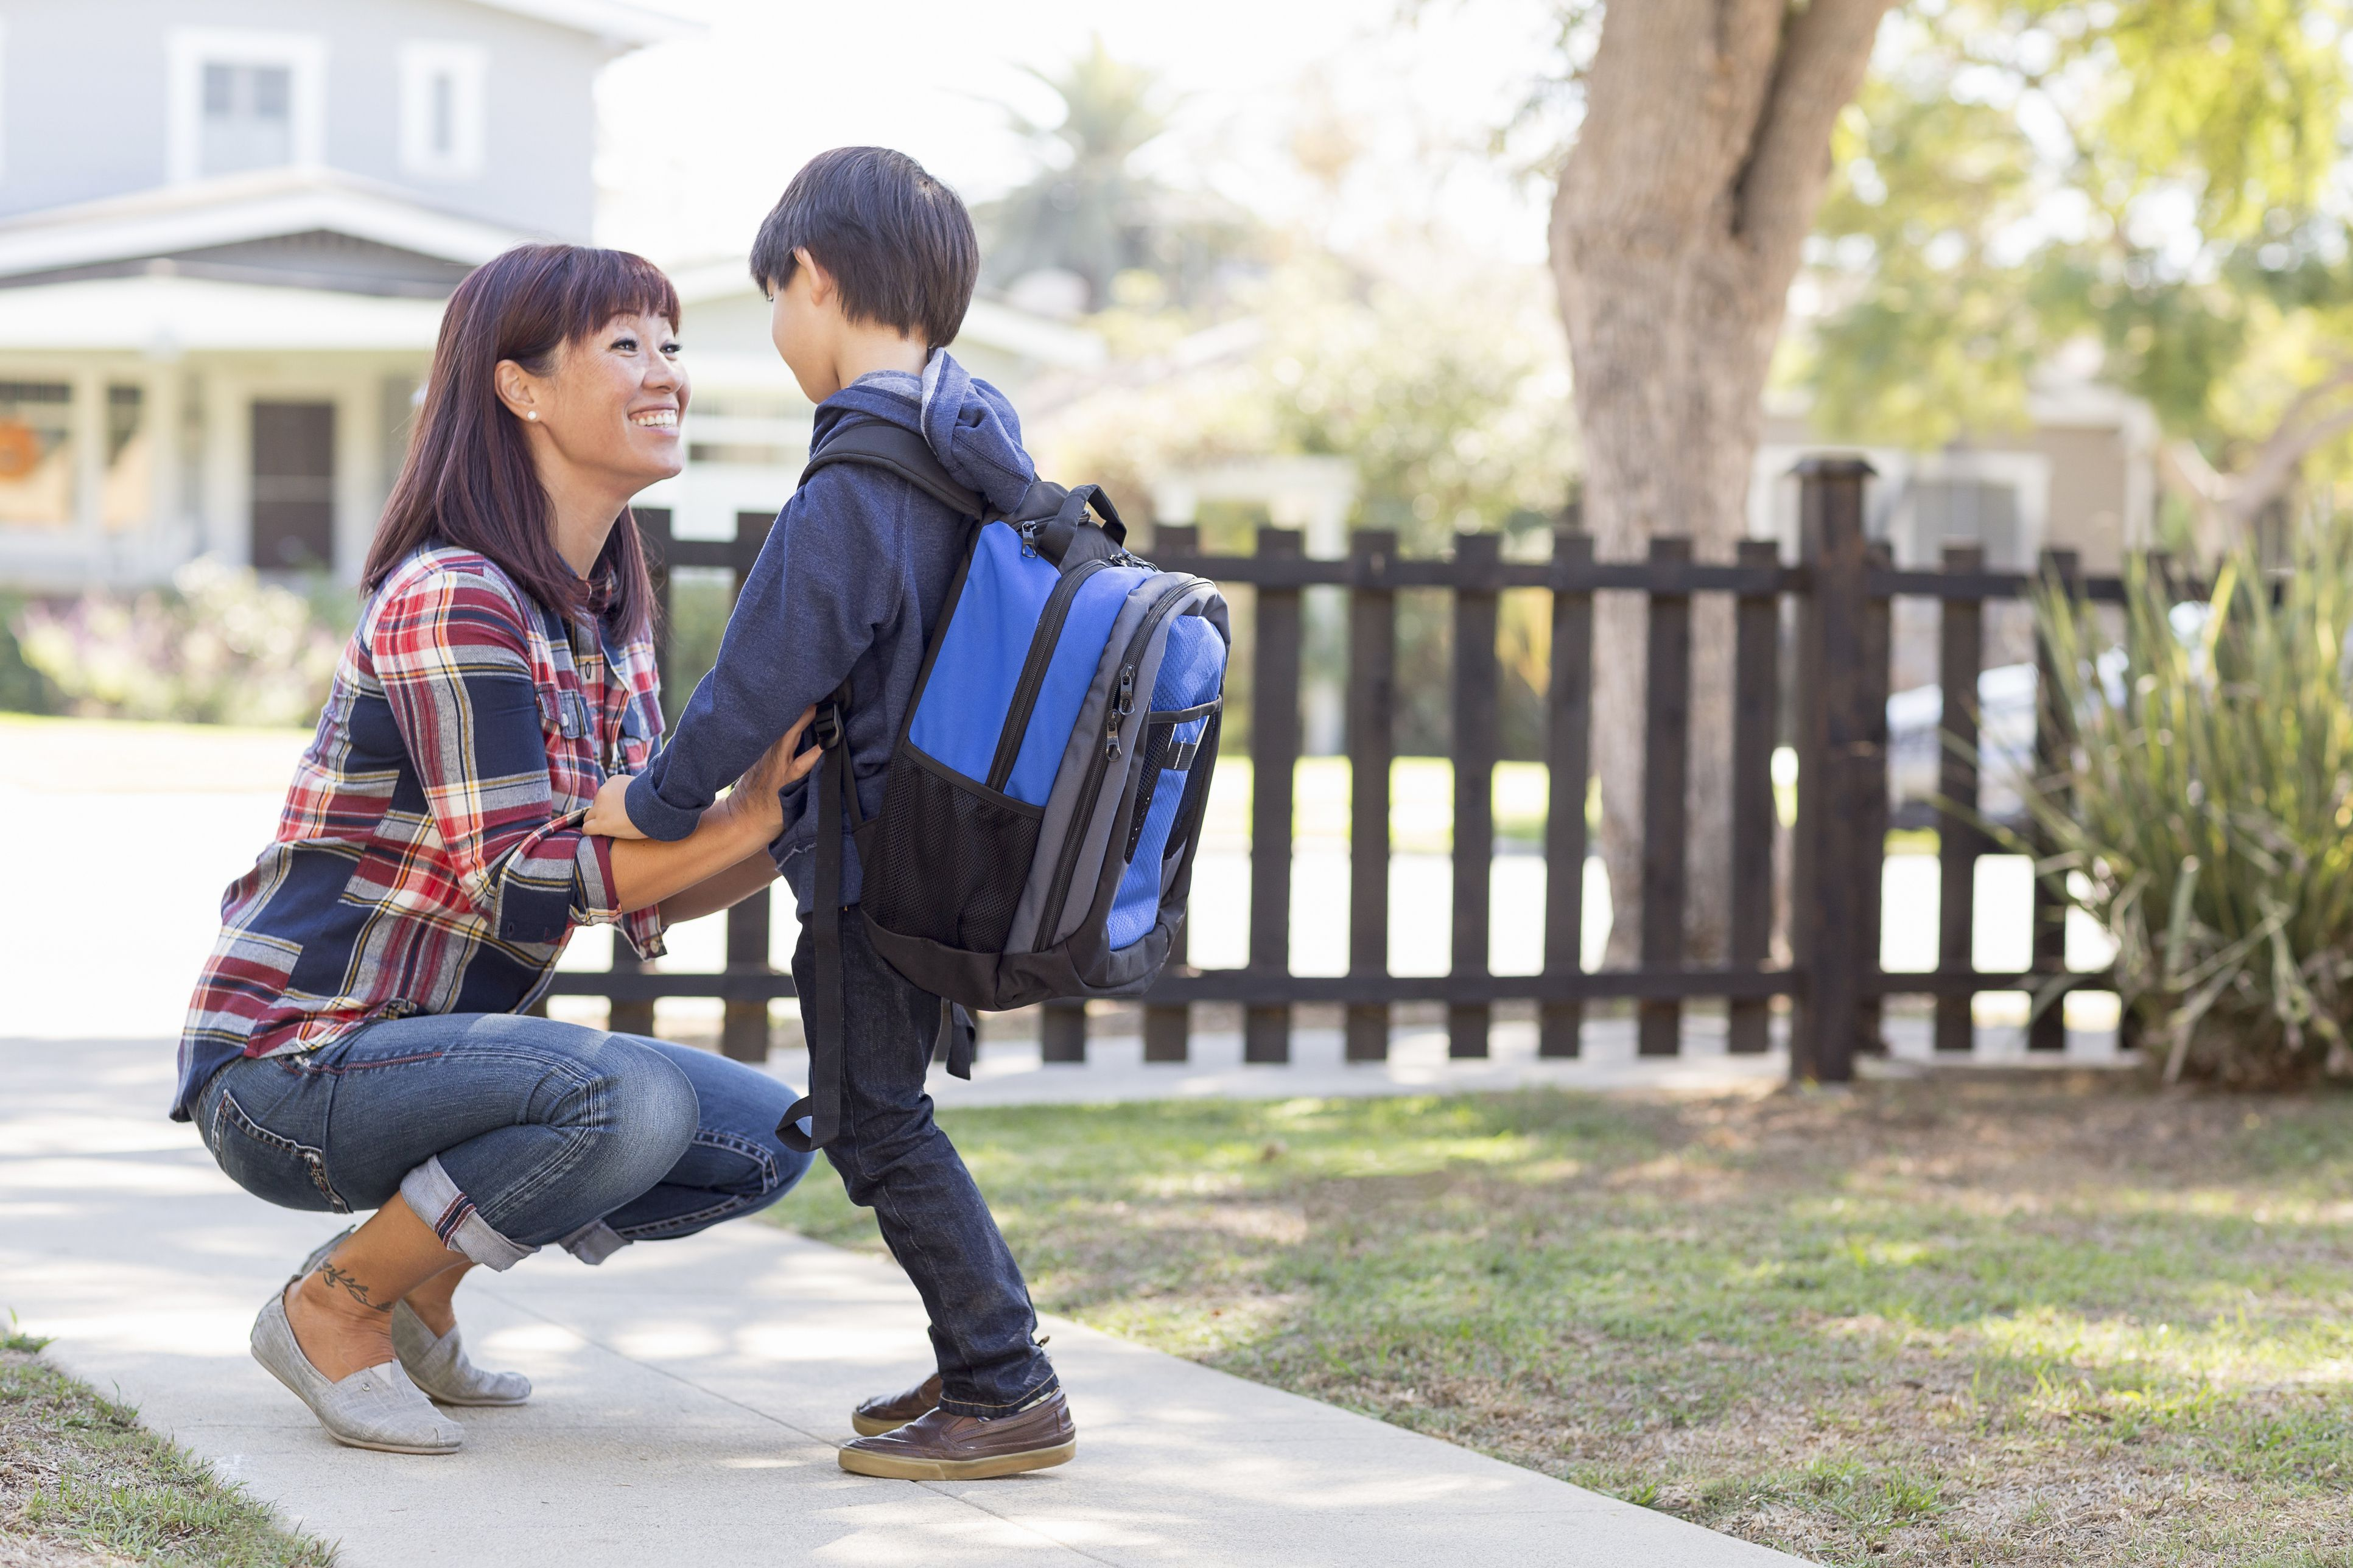 Mother crouching down to talk to young boy on sidewalk